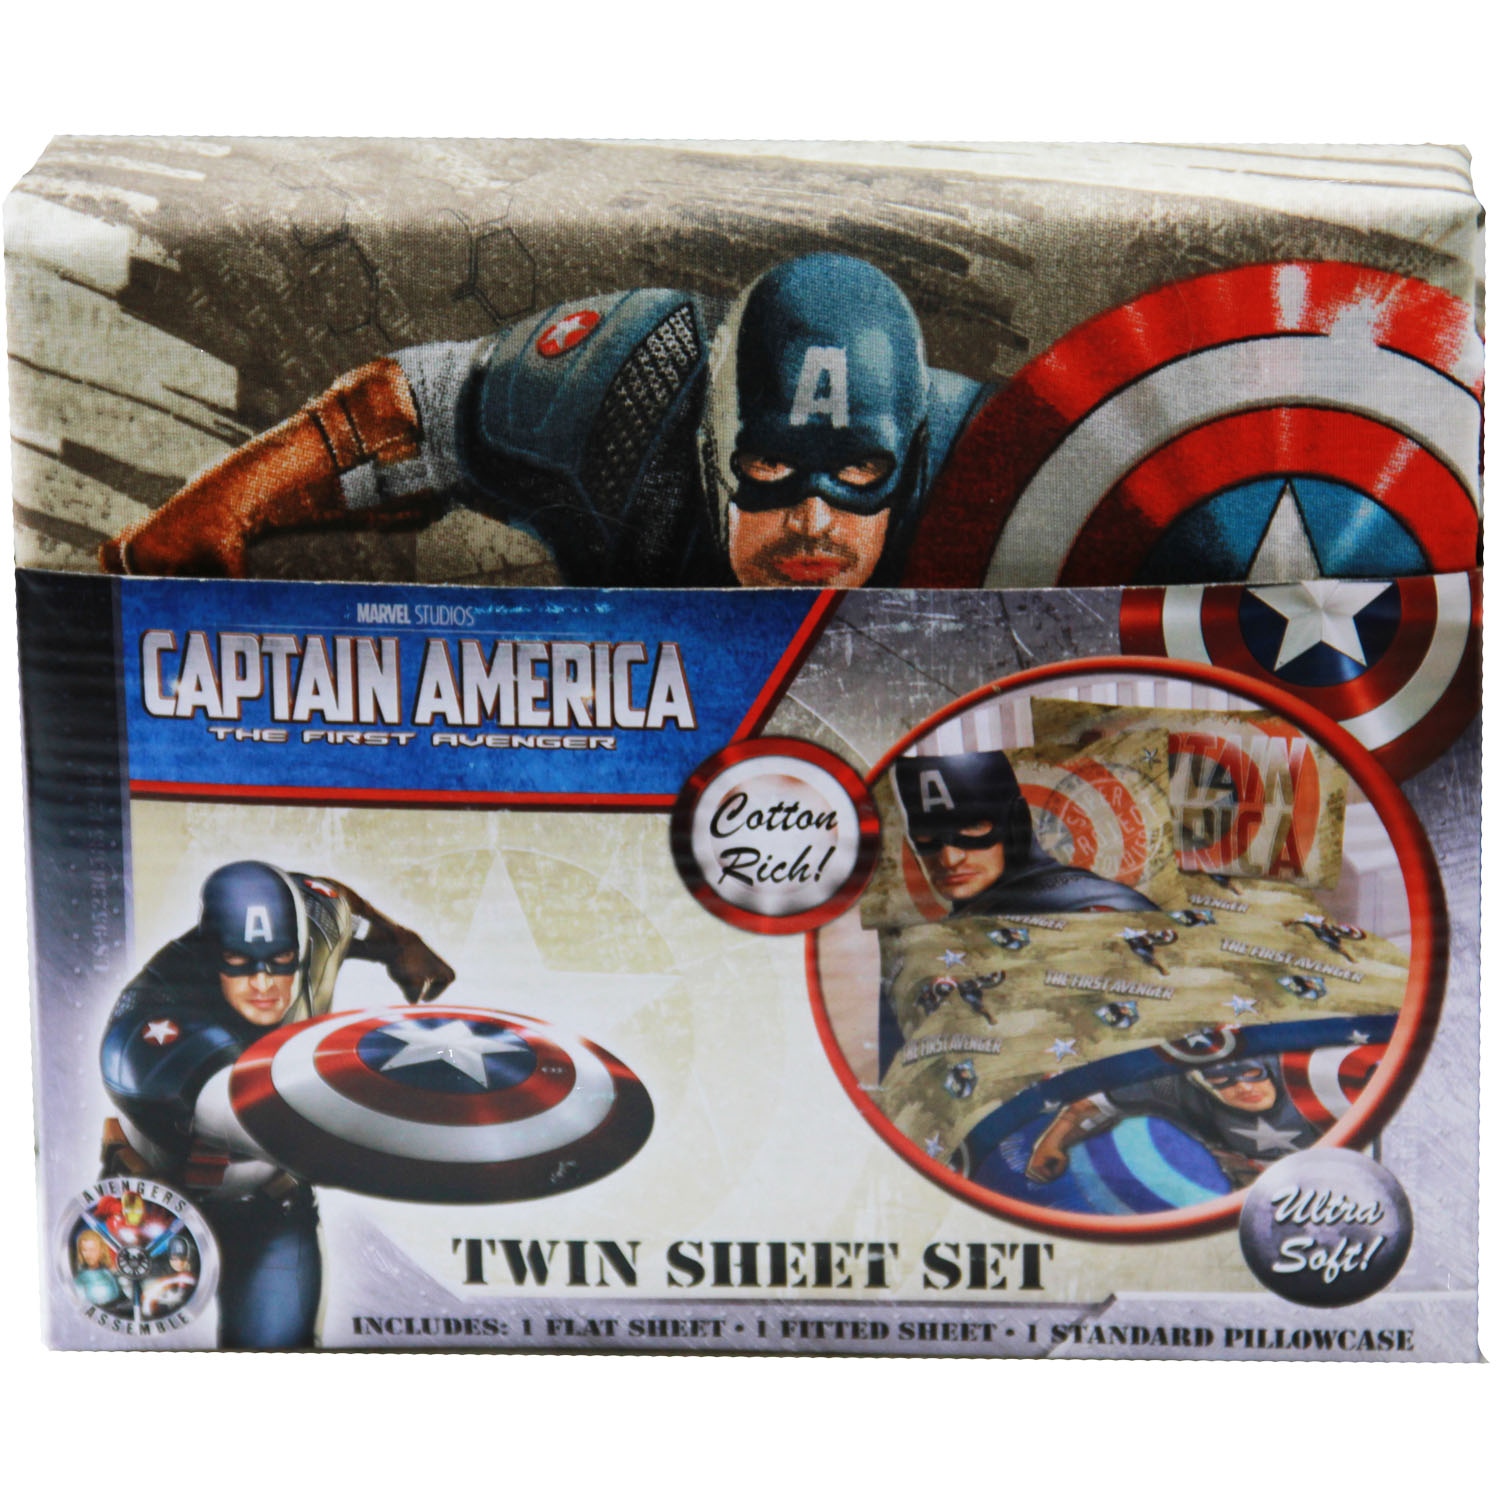 Captain America Bedding Twin Sheet Set At Toystop